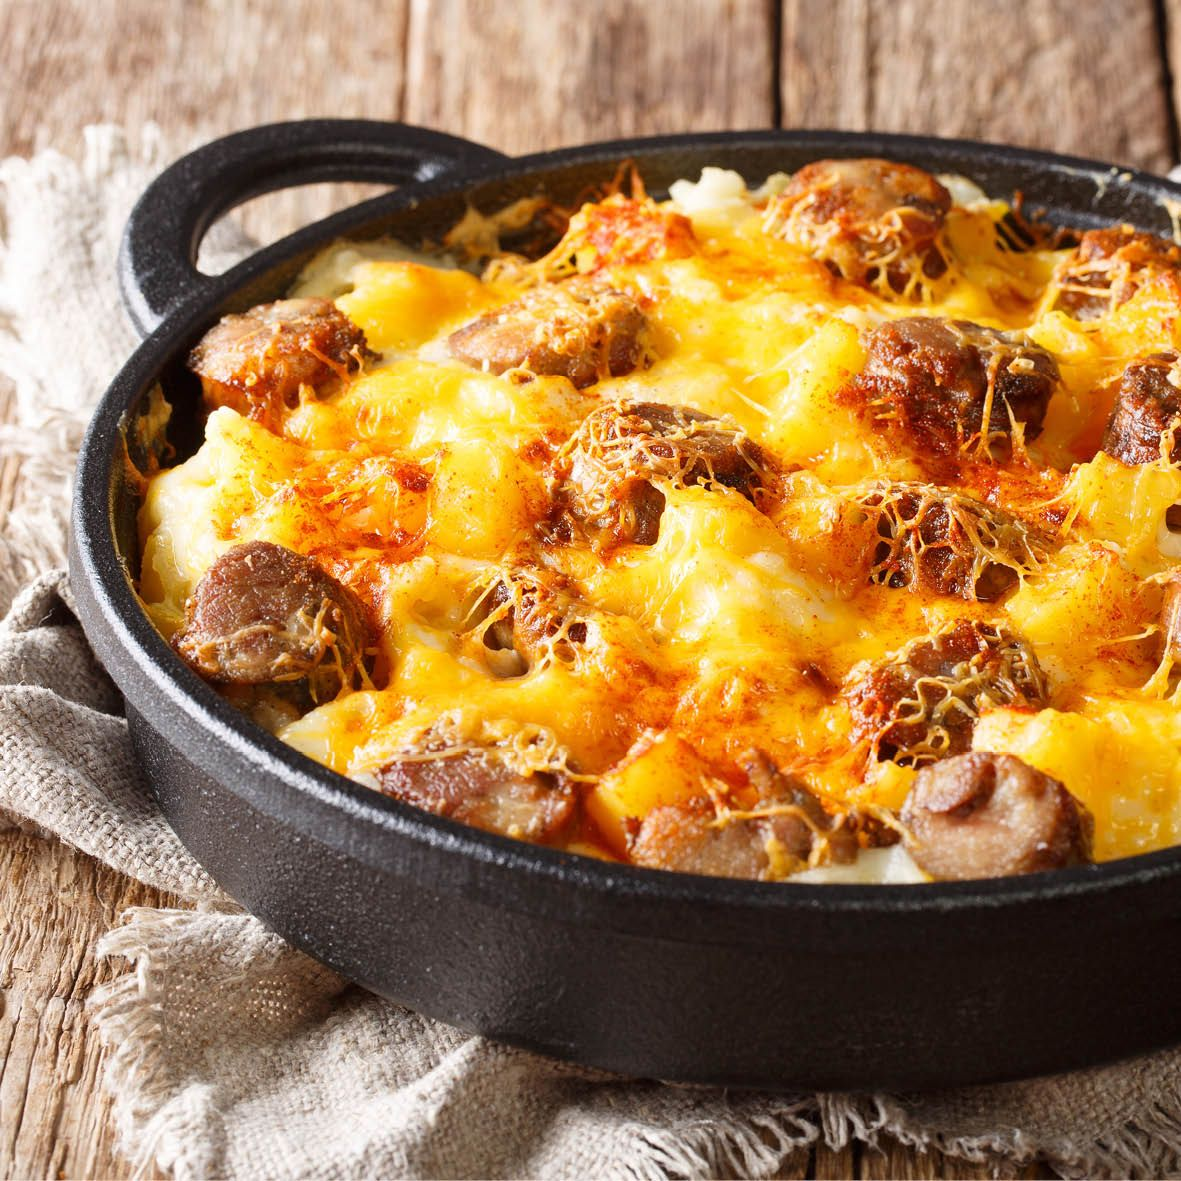 Cheesy_Potato_and_Sausage_Casserole.jpg